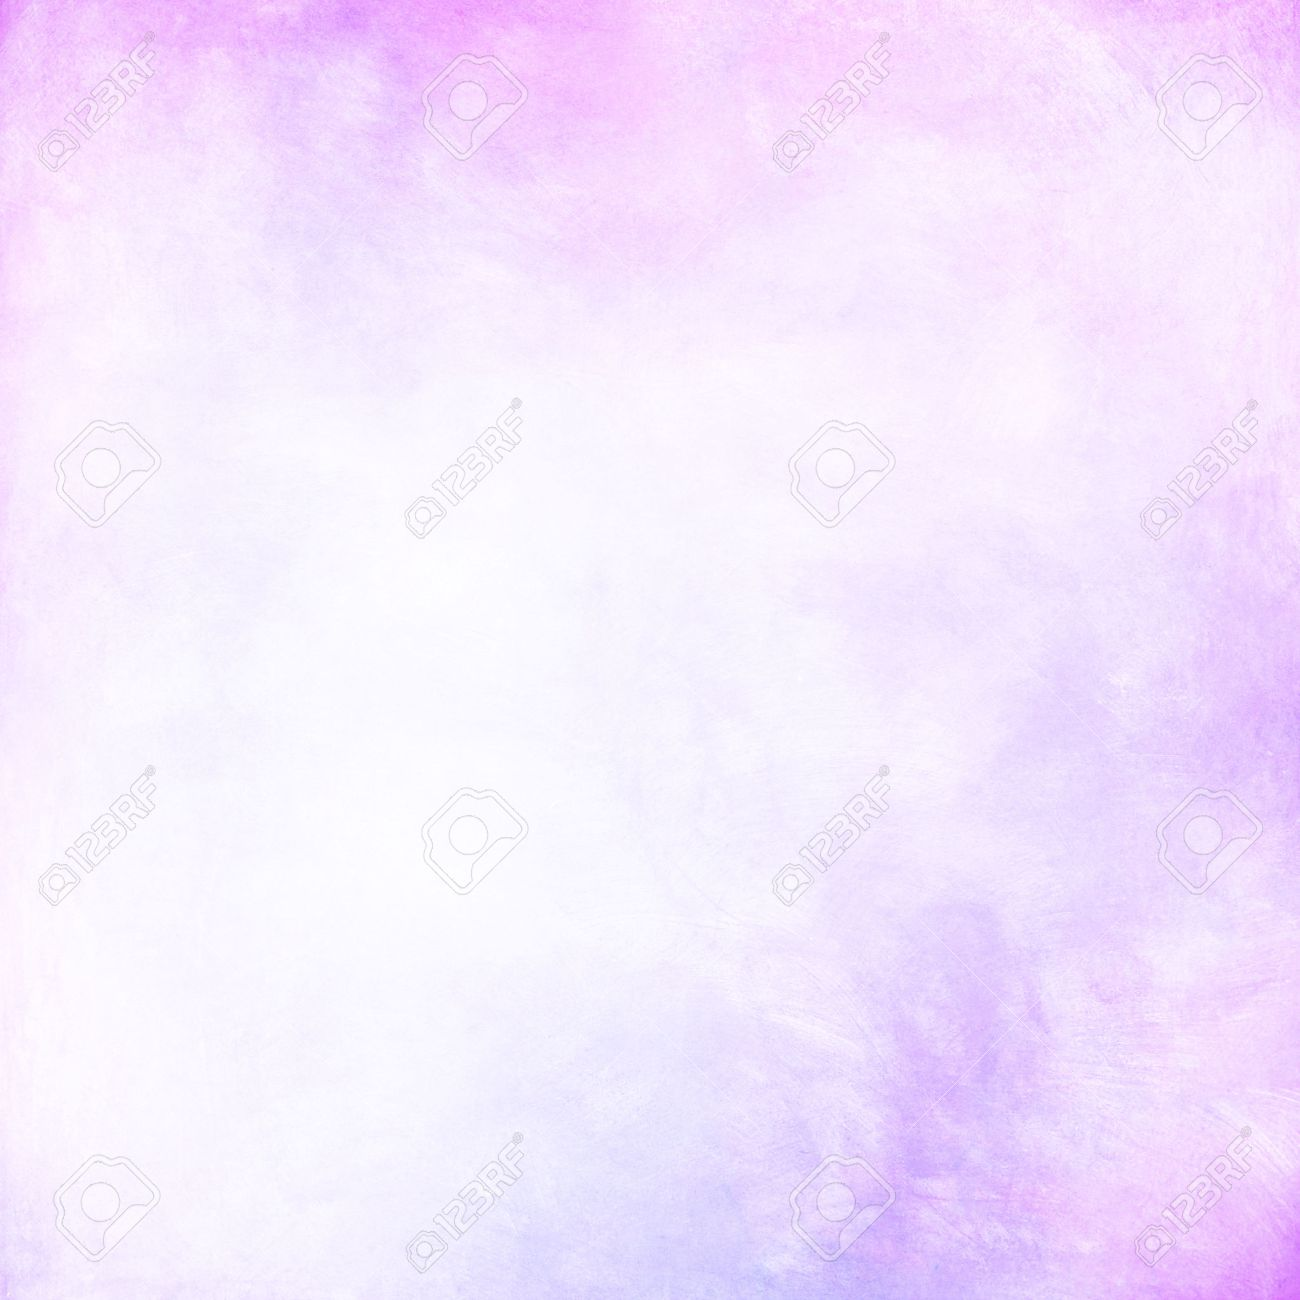 Pastel purple background stock photo picture and royalty free image pastel purple background voltagebd Image collections